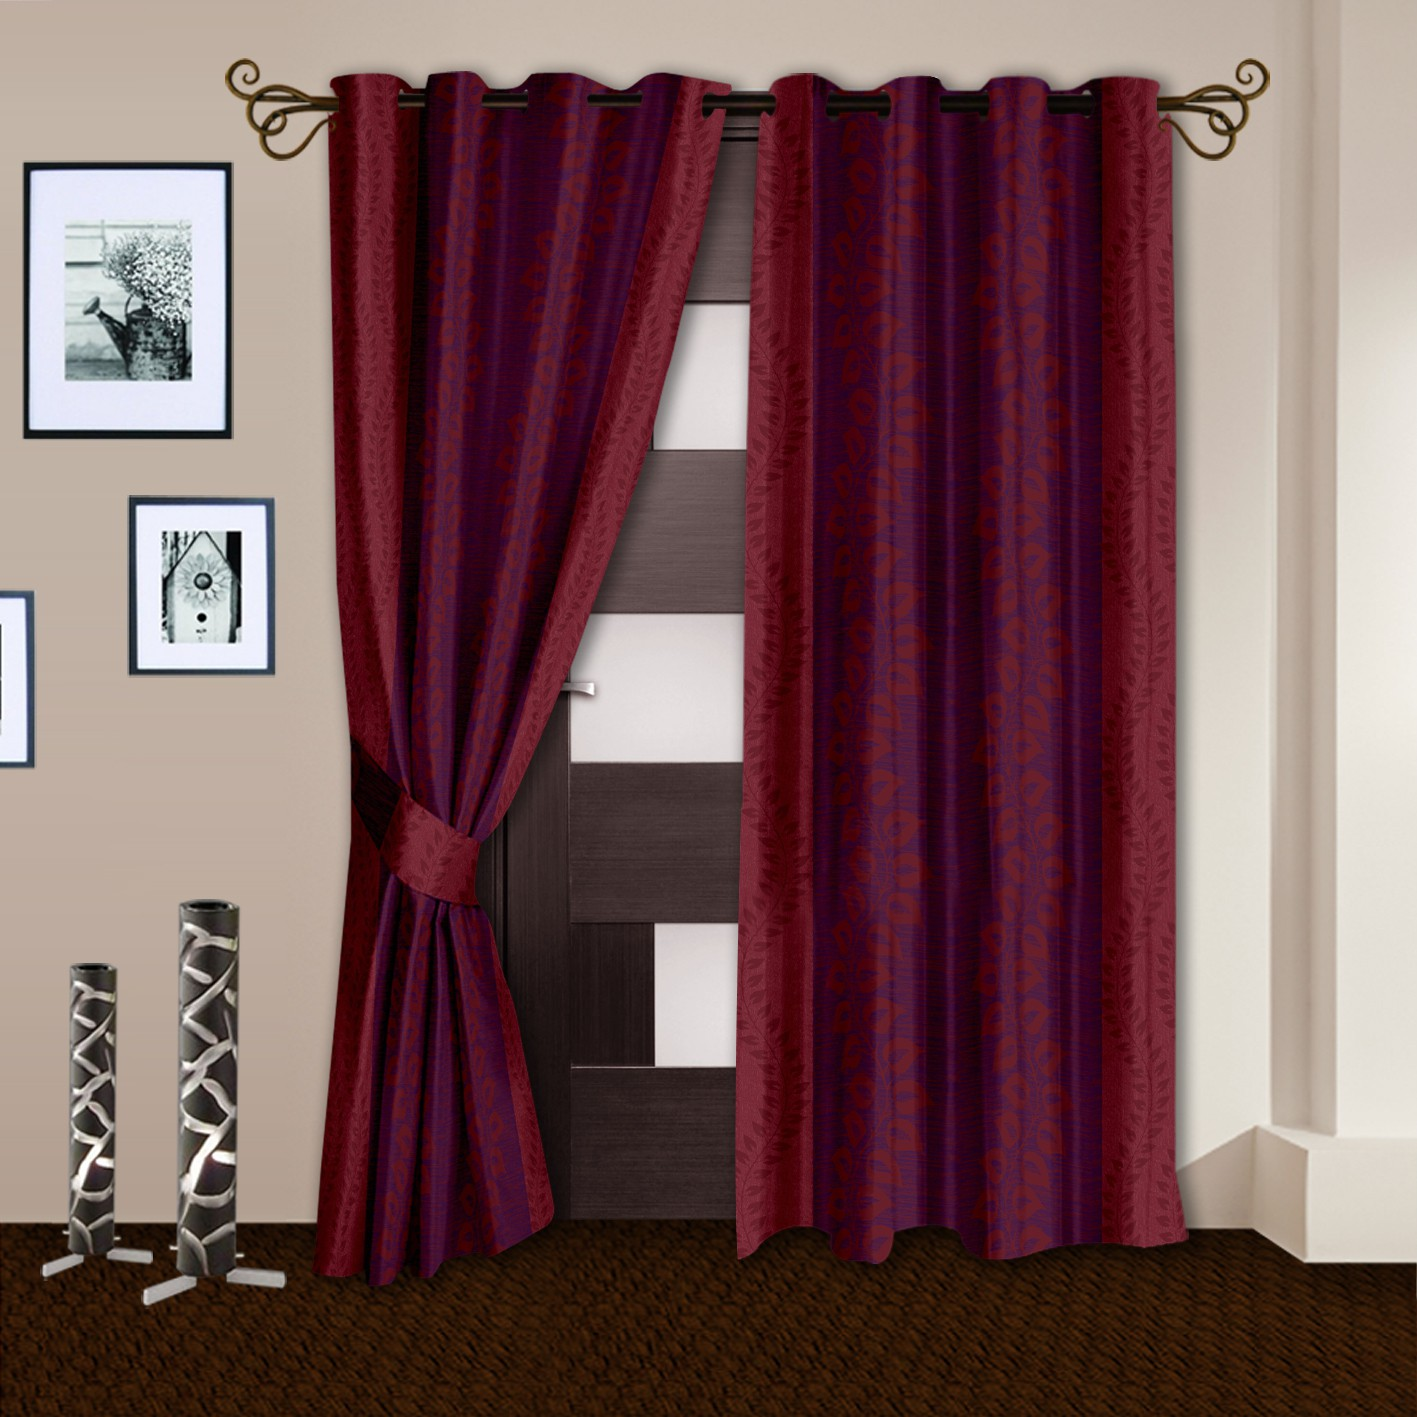 Flipkart - Colorful Door Curtains Just at Rs. 499